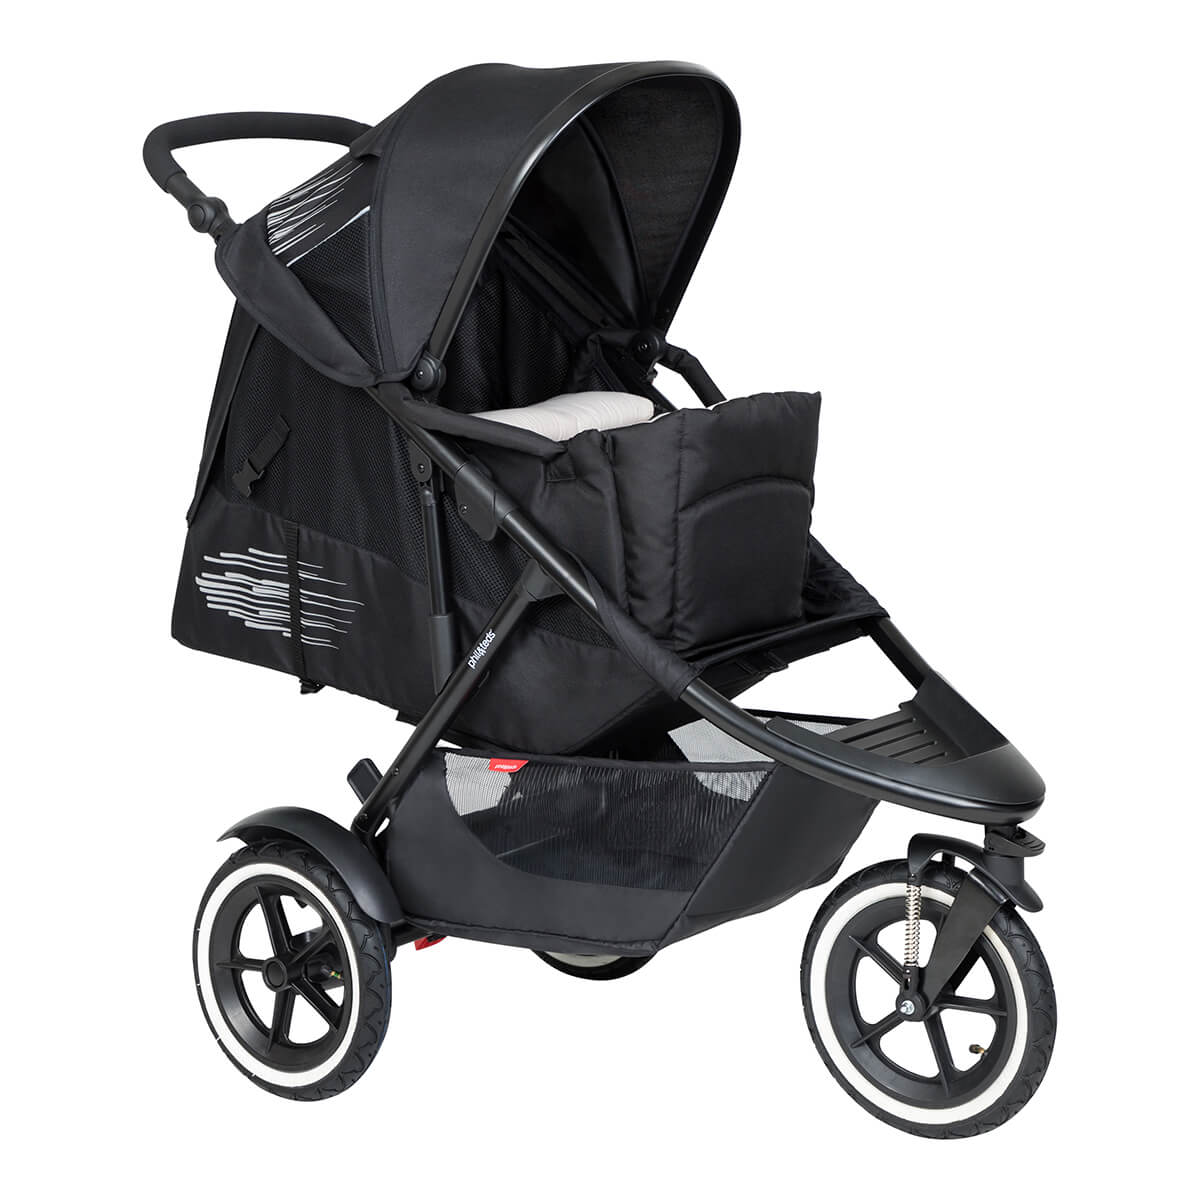 https://cdn.accentuate.io/4509867475041/19793938874538/philteds-sport-buggy-with-cocoon-full-recline-v1626485332239.jpg?1200x1200